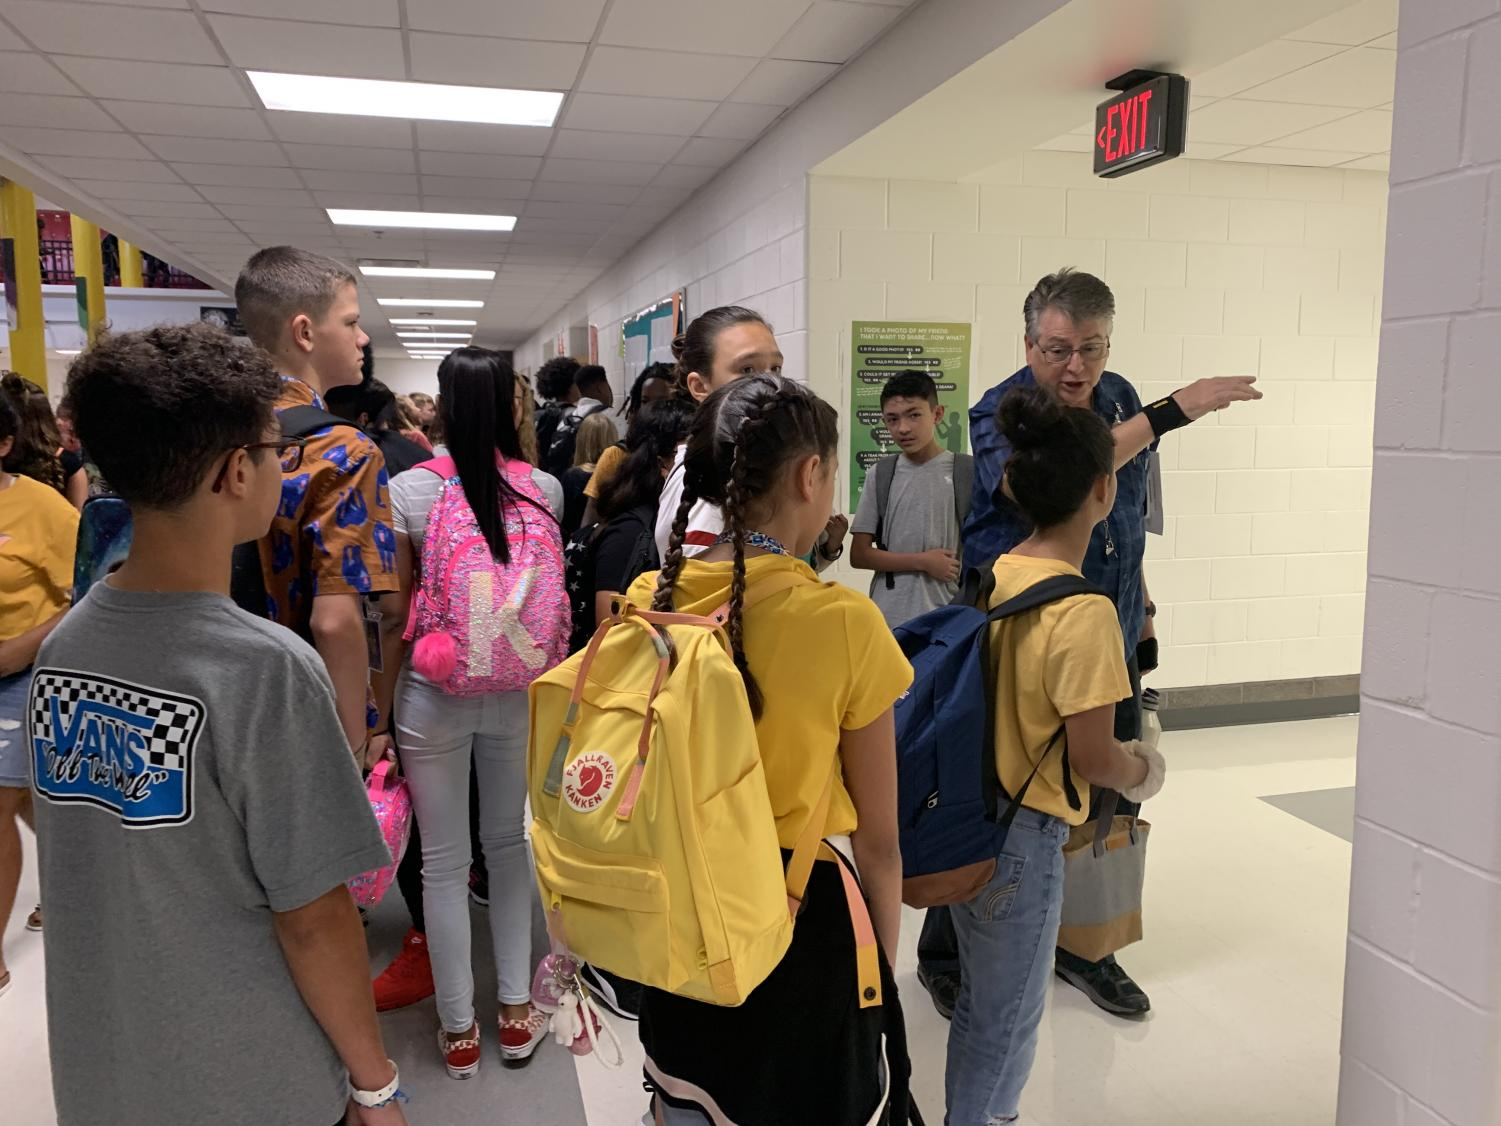 It's back-to-school for Dobie students